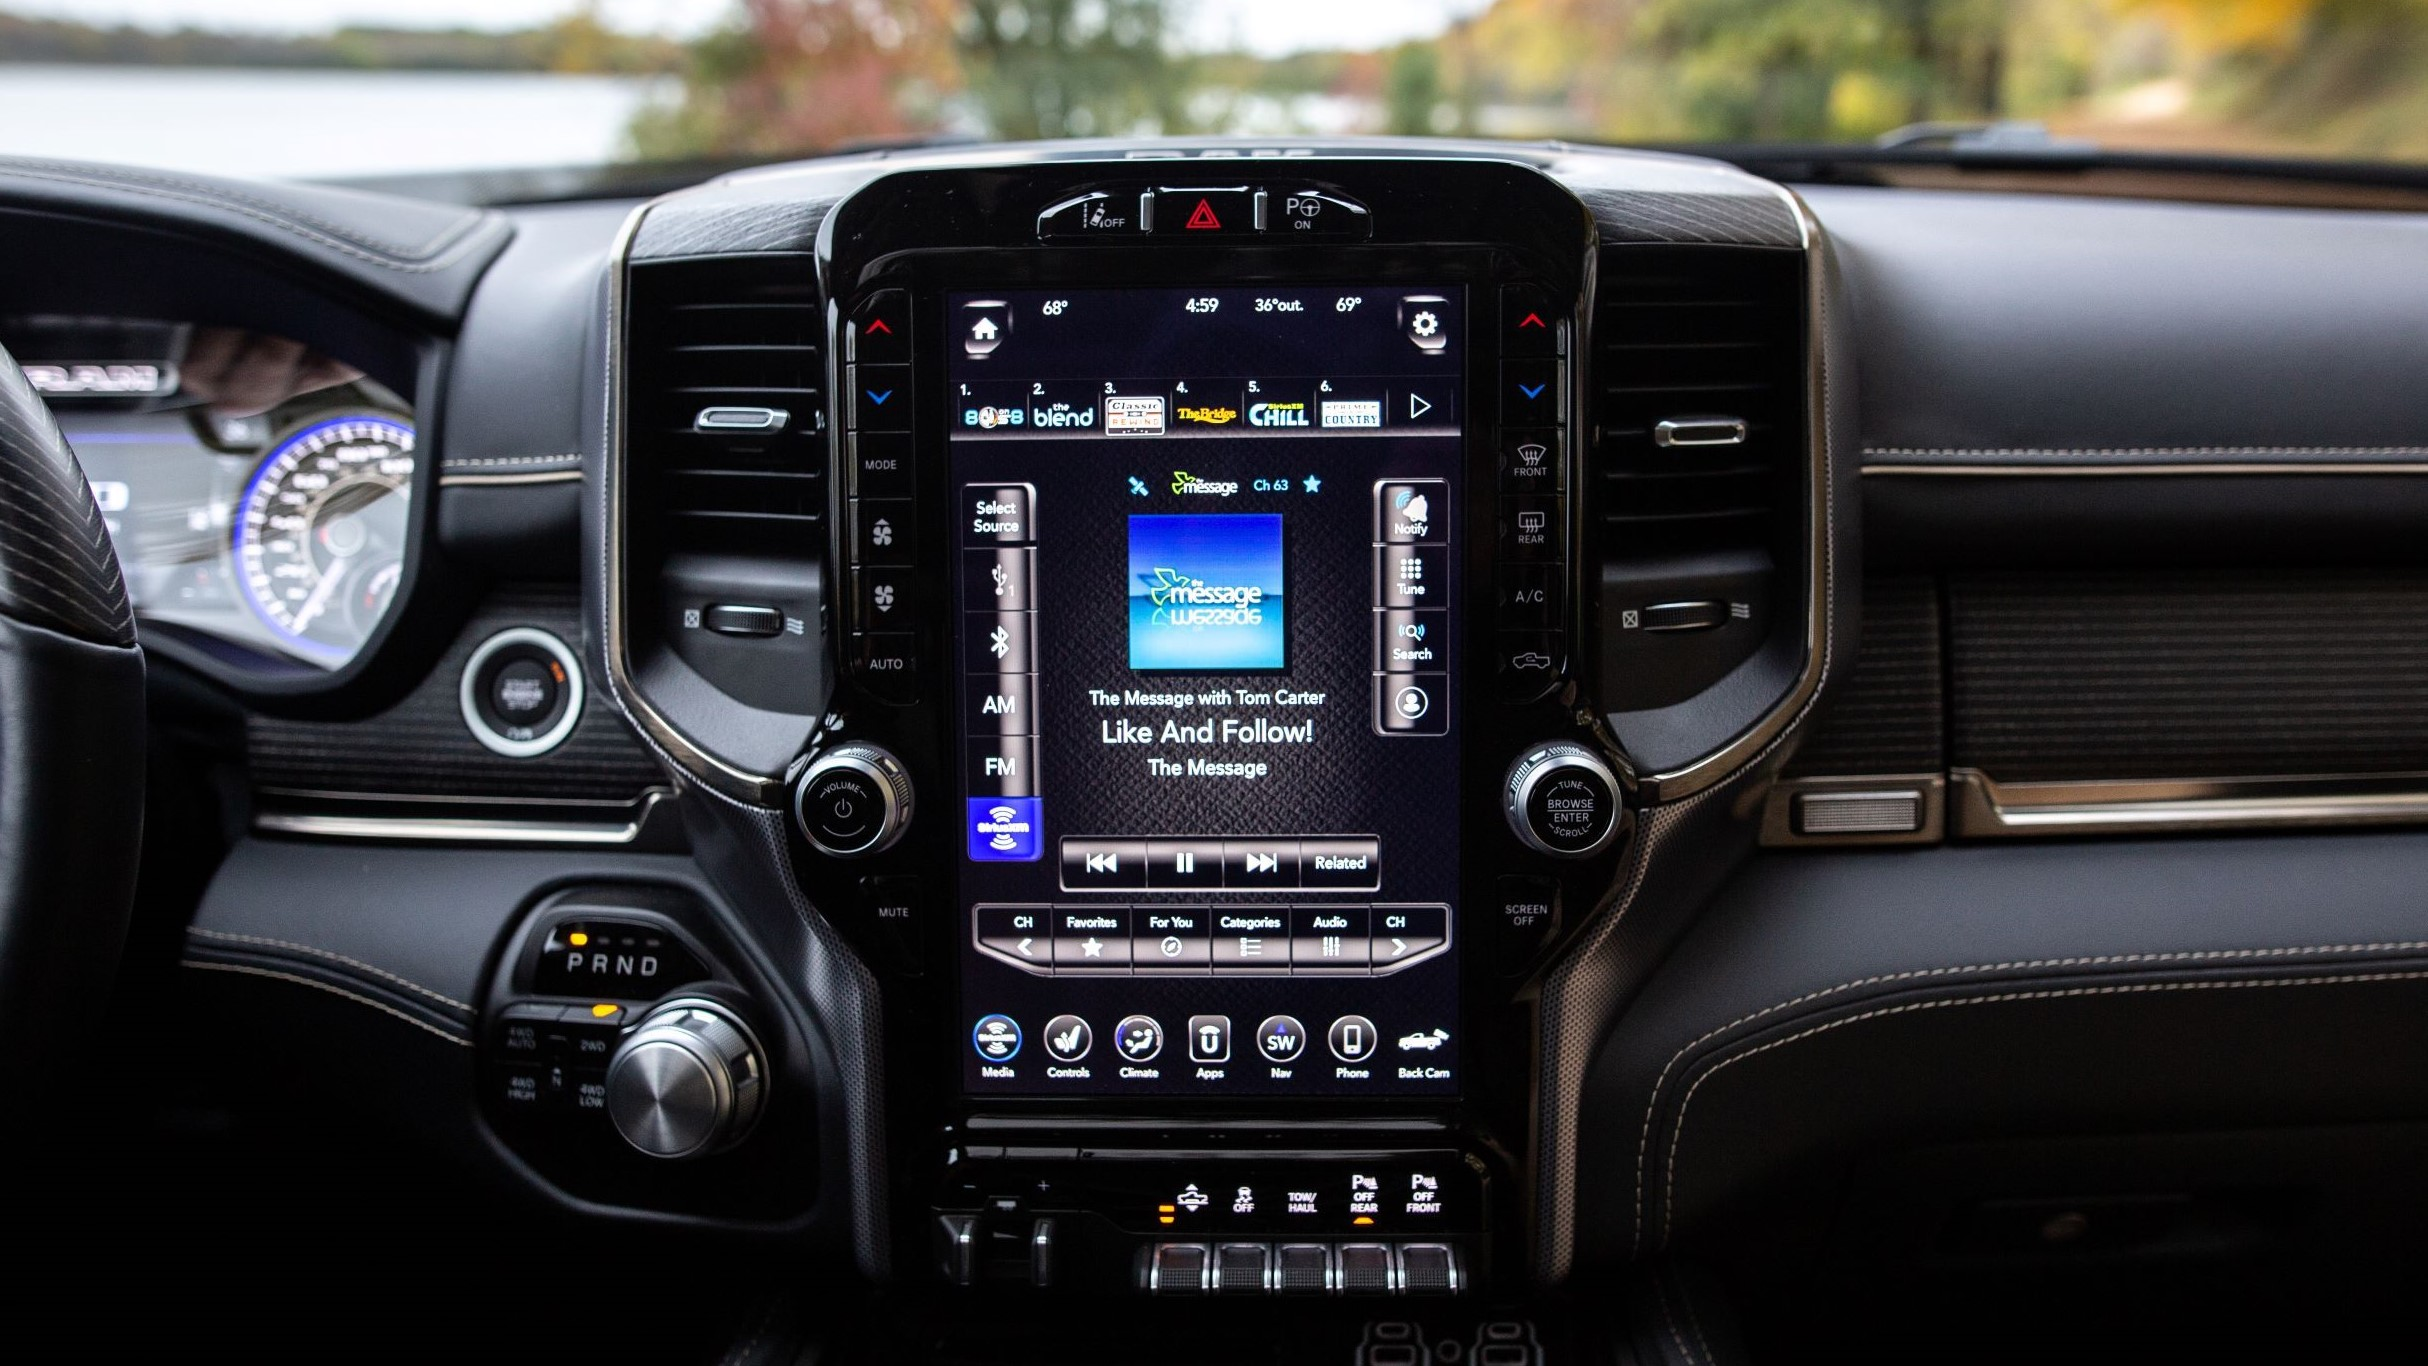 So, about that massive 12-inch screen on the 2019 RAM 1500 pickup